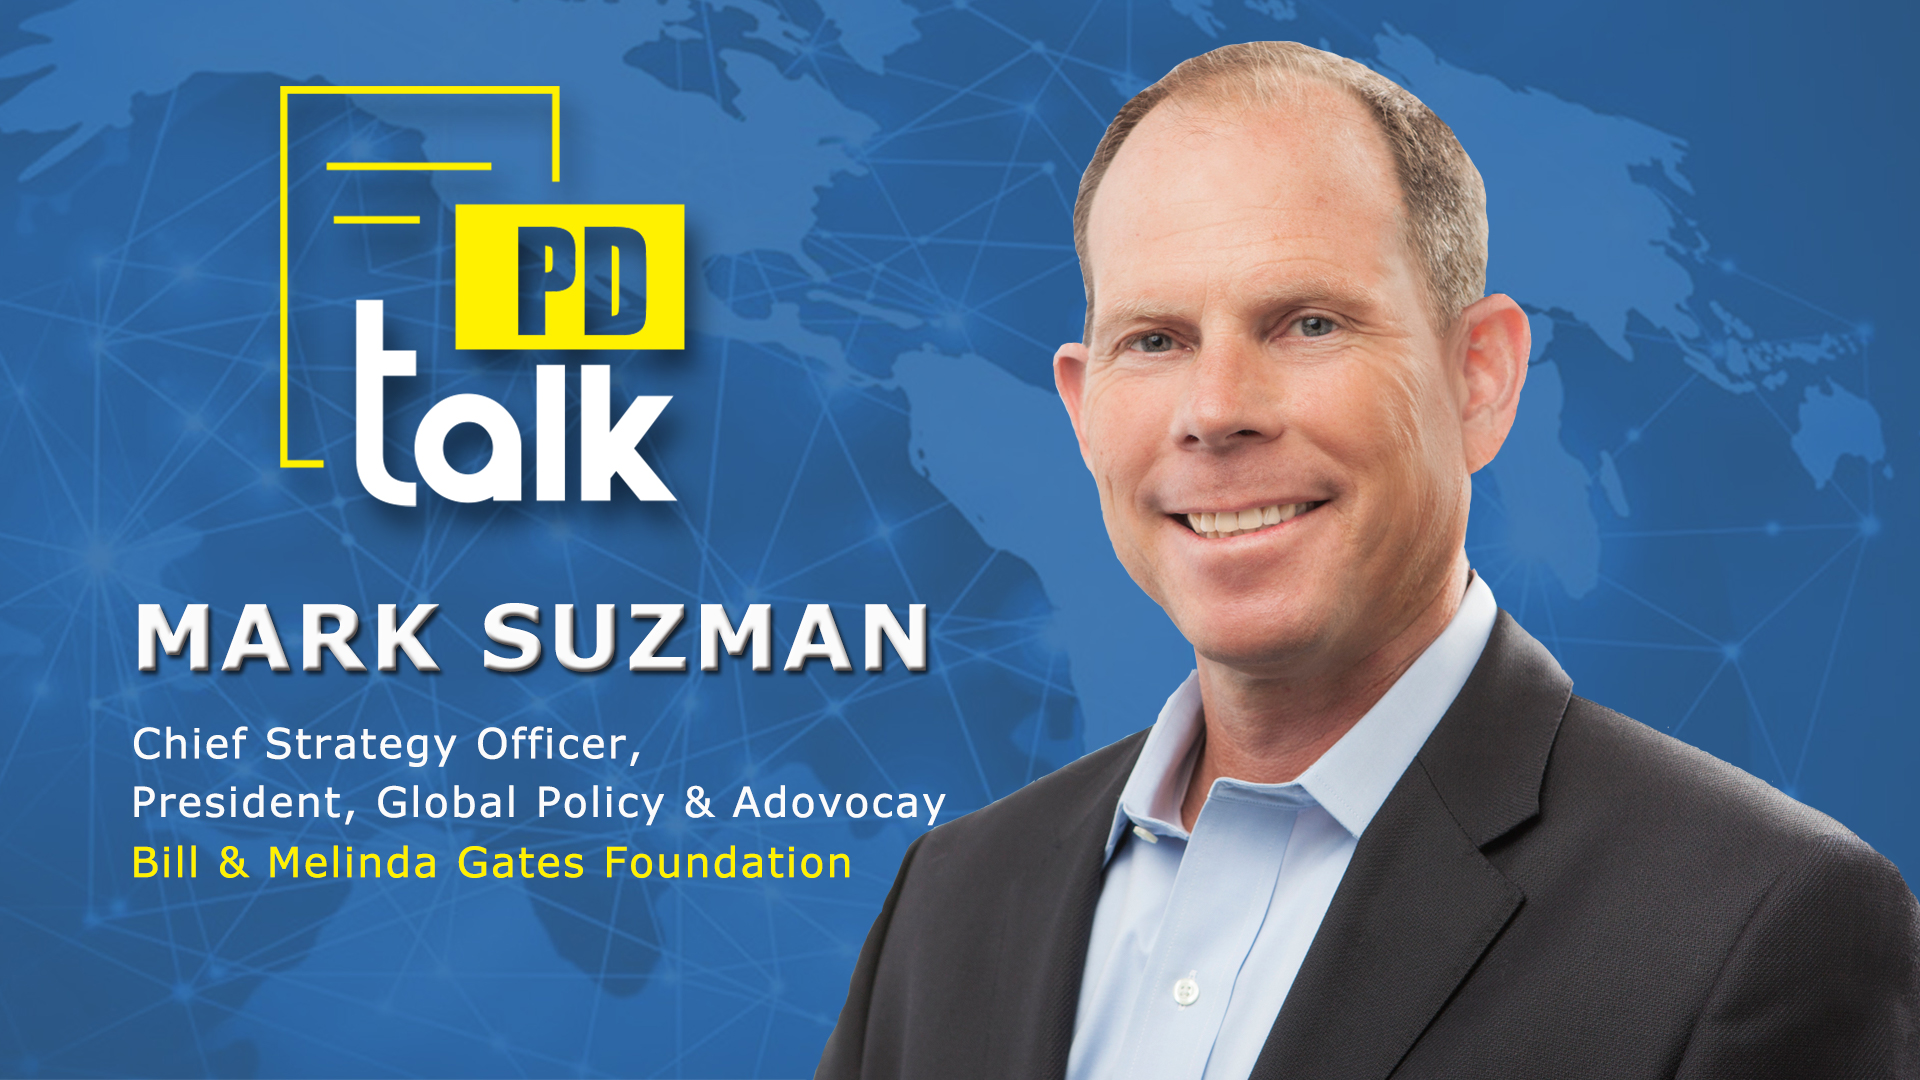 PD Talk | Progress is possible, even with inequality: Mark Suzman